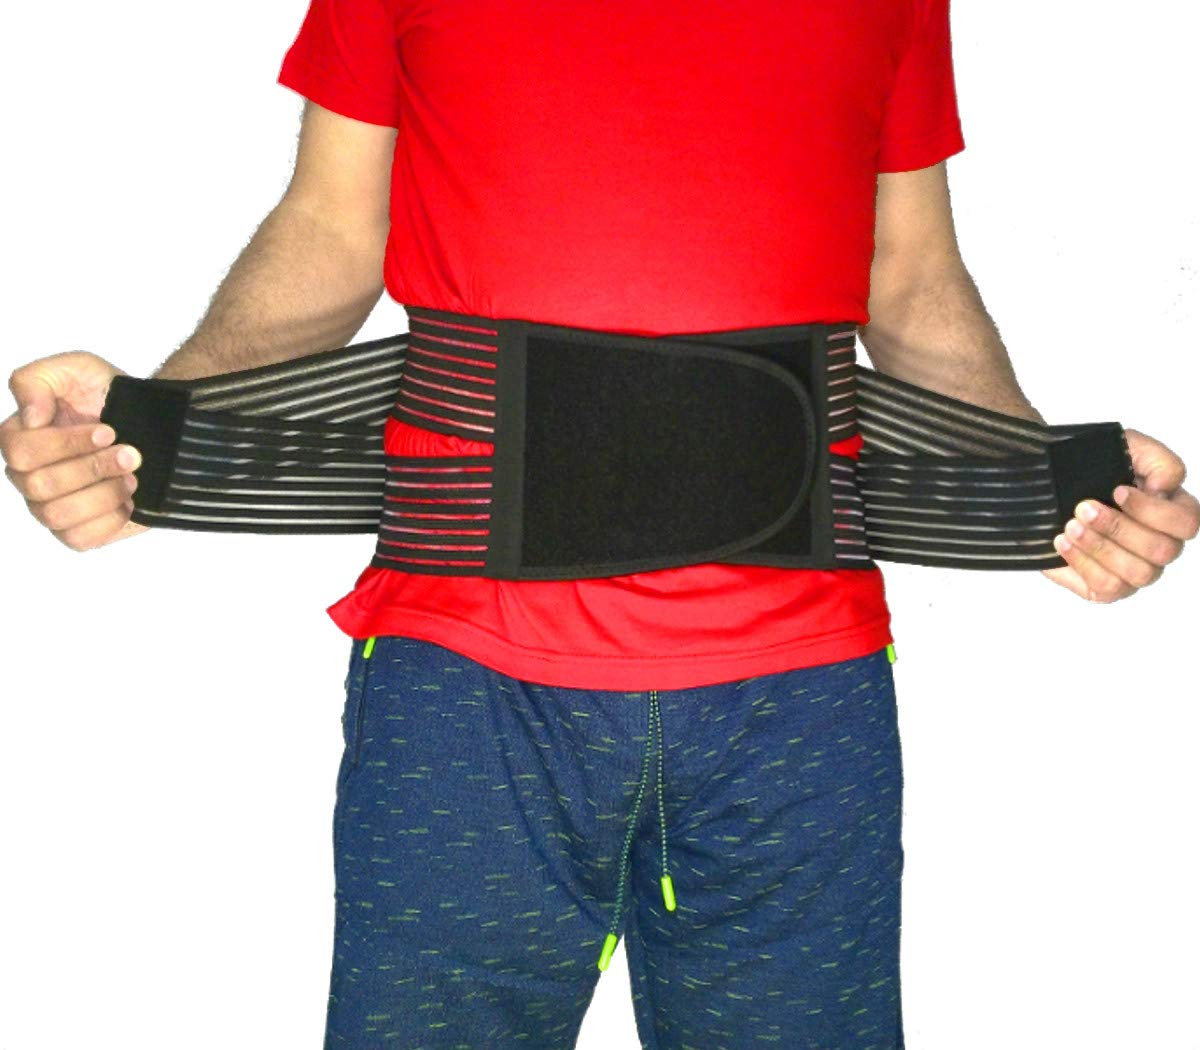 Best Back Brace Lumbar Support Belt for Lower Back Pain | Men & Women Under Clothes Breathable Fabric Big Size | Relief disc Sciatica Scoliosis Surgery Pain | Dual Stretch Heavy Lift (2XL/3XL=43-54